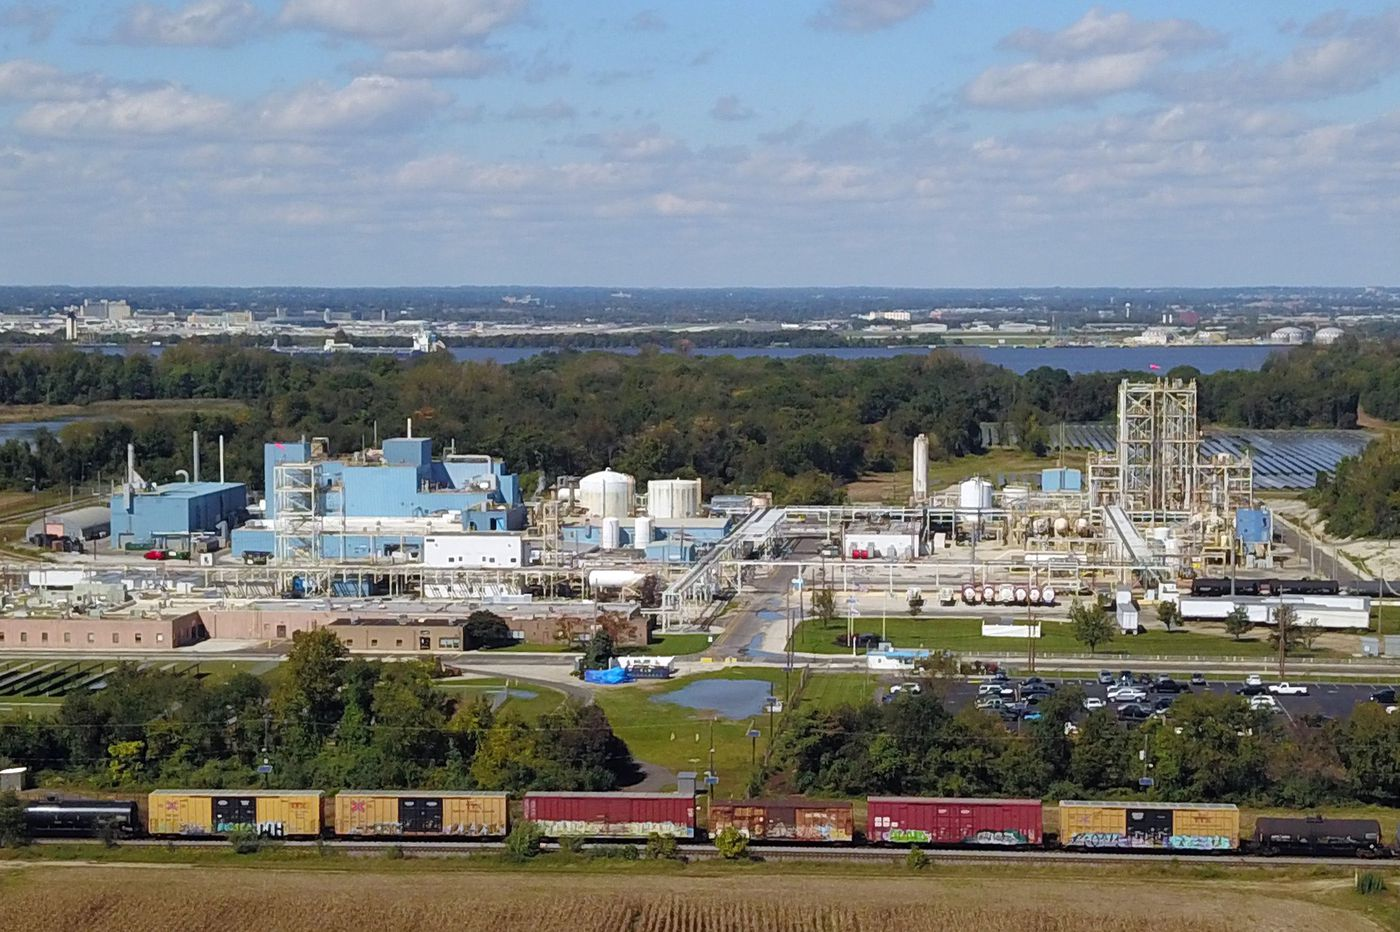 N.J. sues chemical maker Solvay for evading responsibility for toxic pollution from West Deptford plant